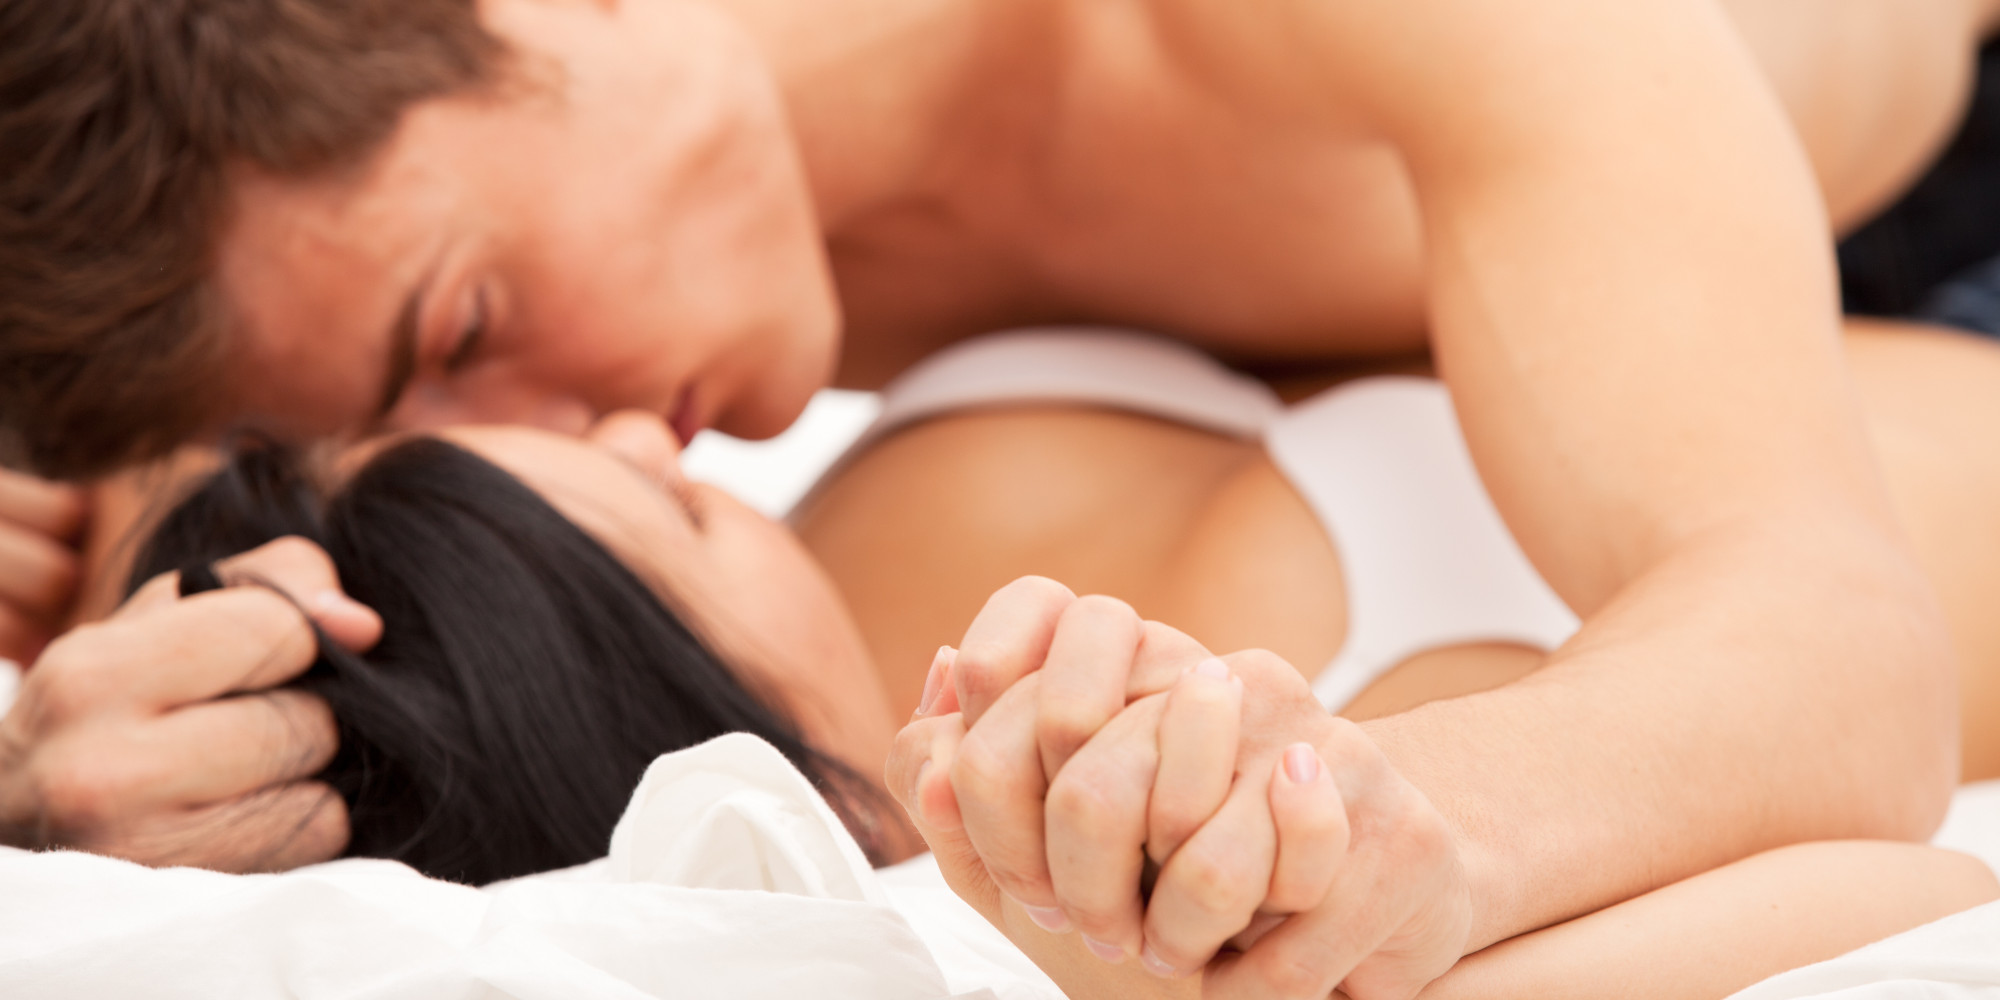 hot couple having sex in spoon position